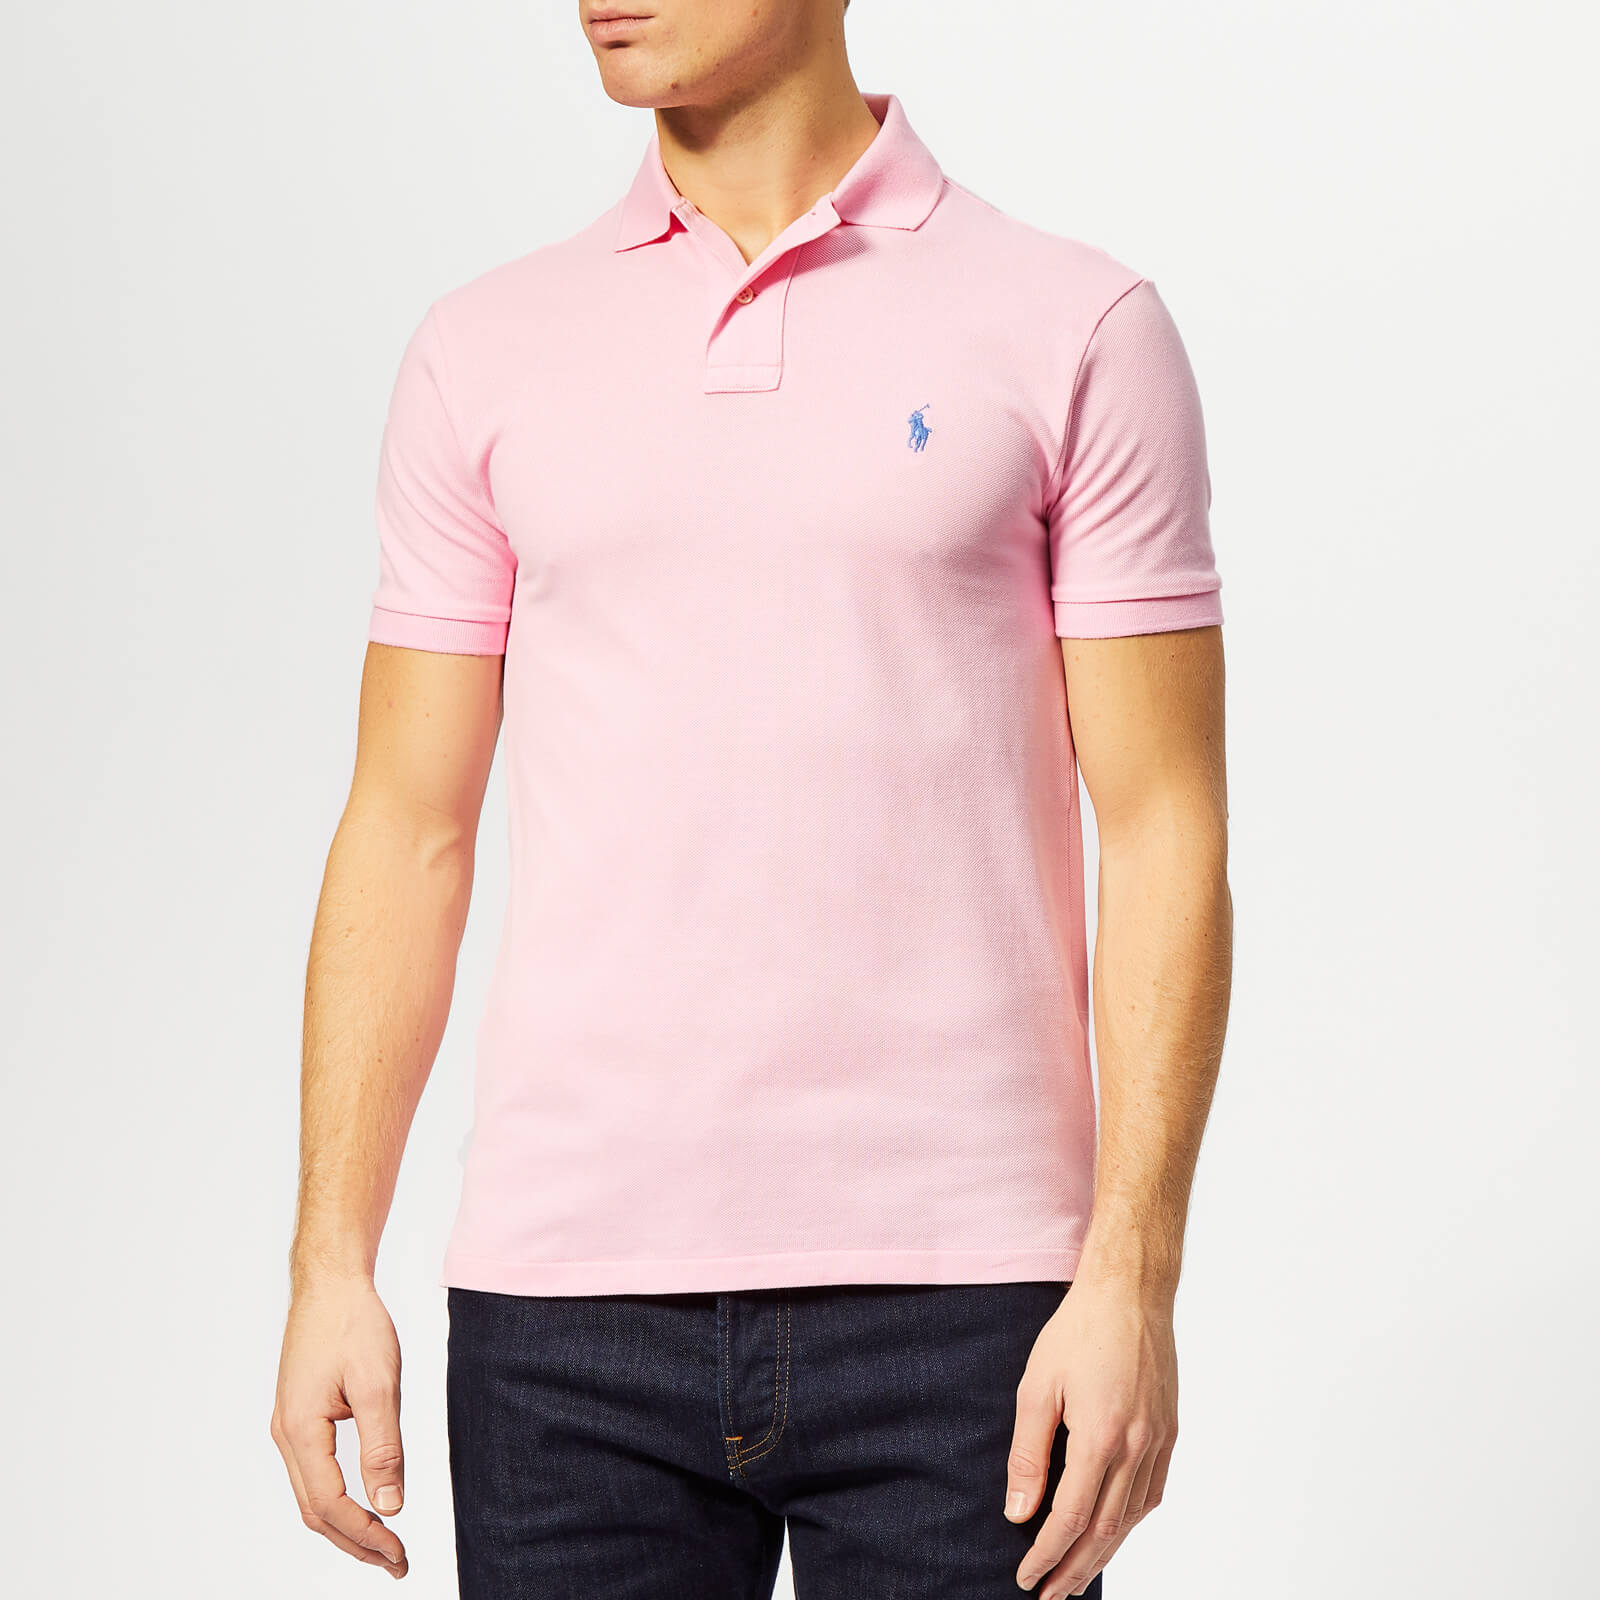 db753ce1c Polo Ralph Lauren Men's Basic Pique Slim Fit Polo-Shirt - Taylor Rose -  Free UK Delivery over £50